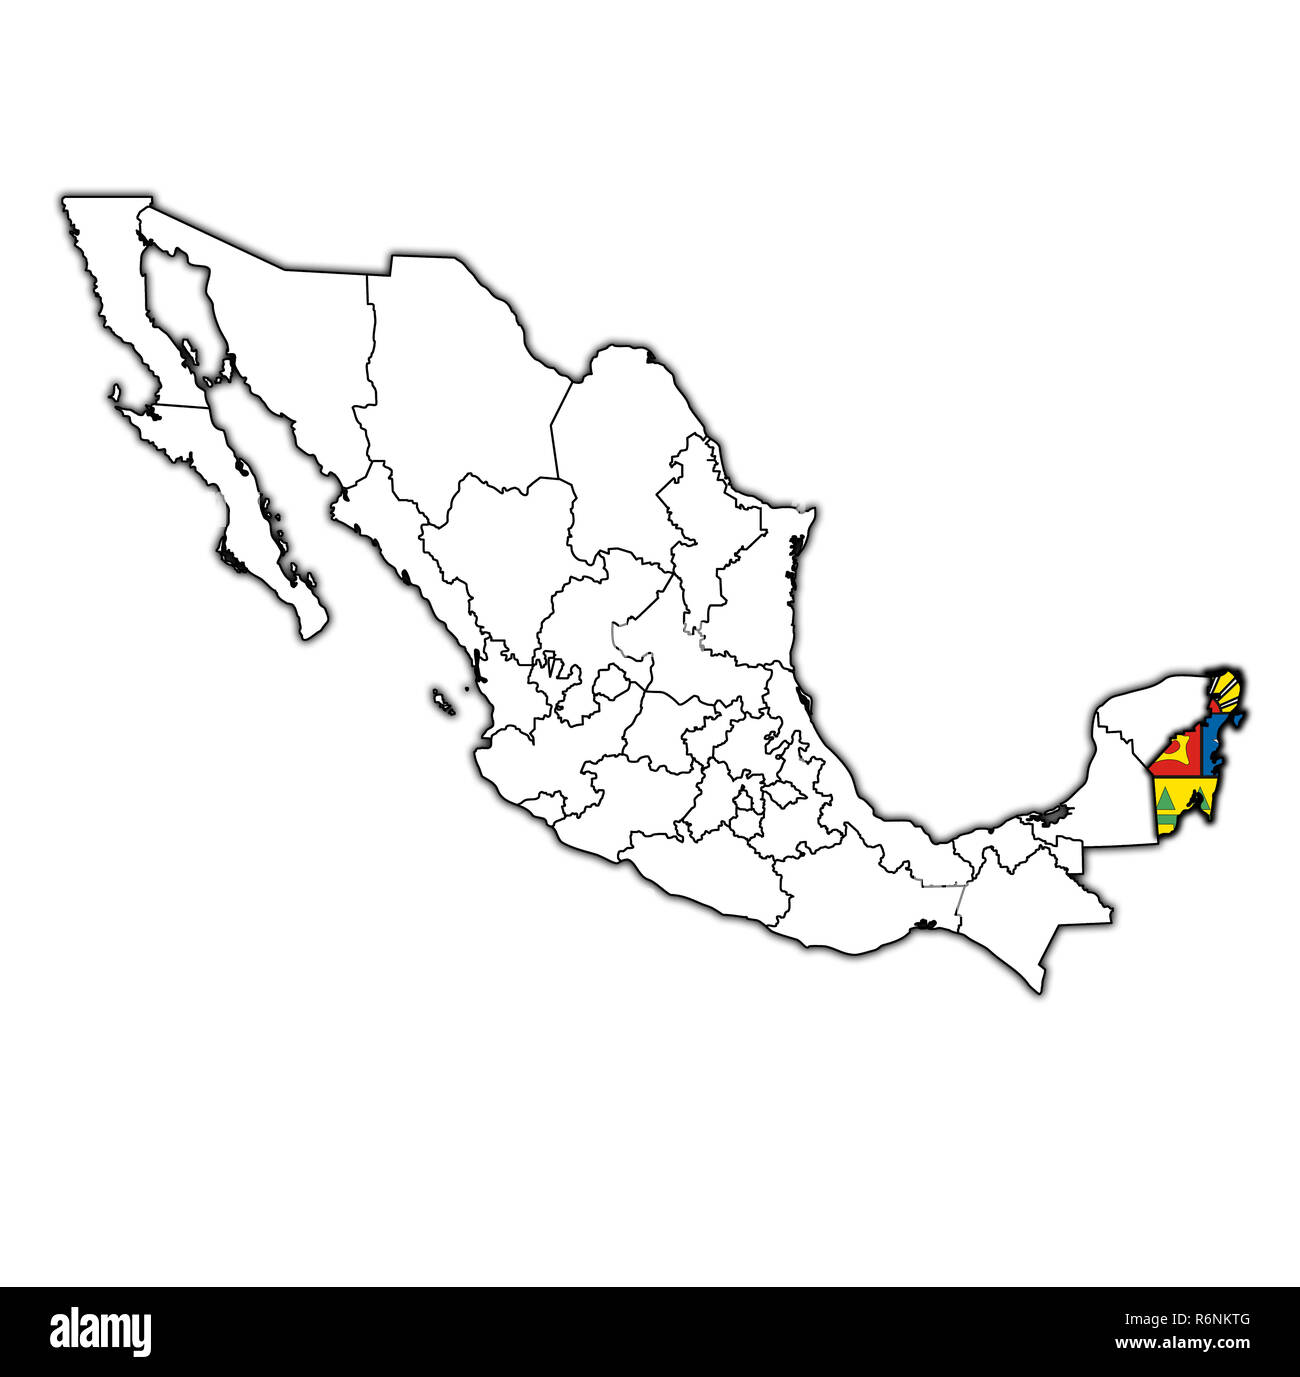 Quintana Roo On Administration Map Of Mexico Stock Photo 227899296